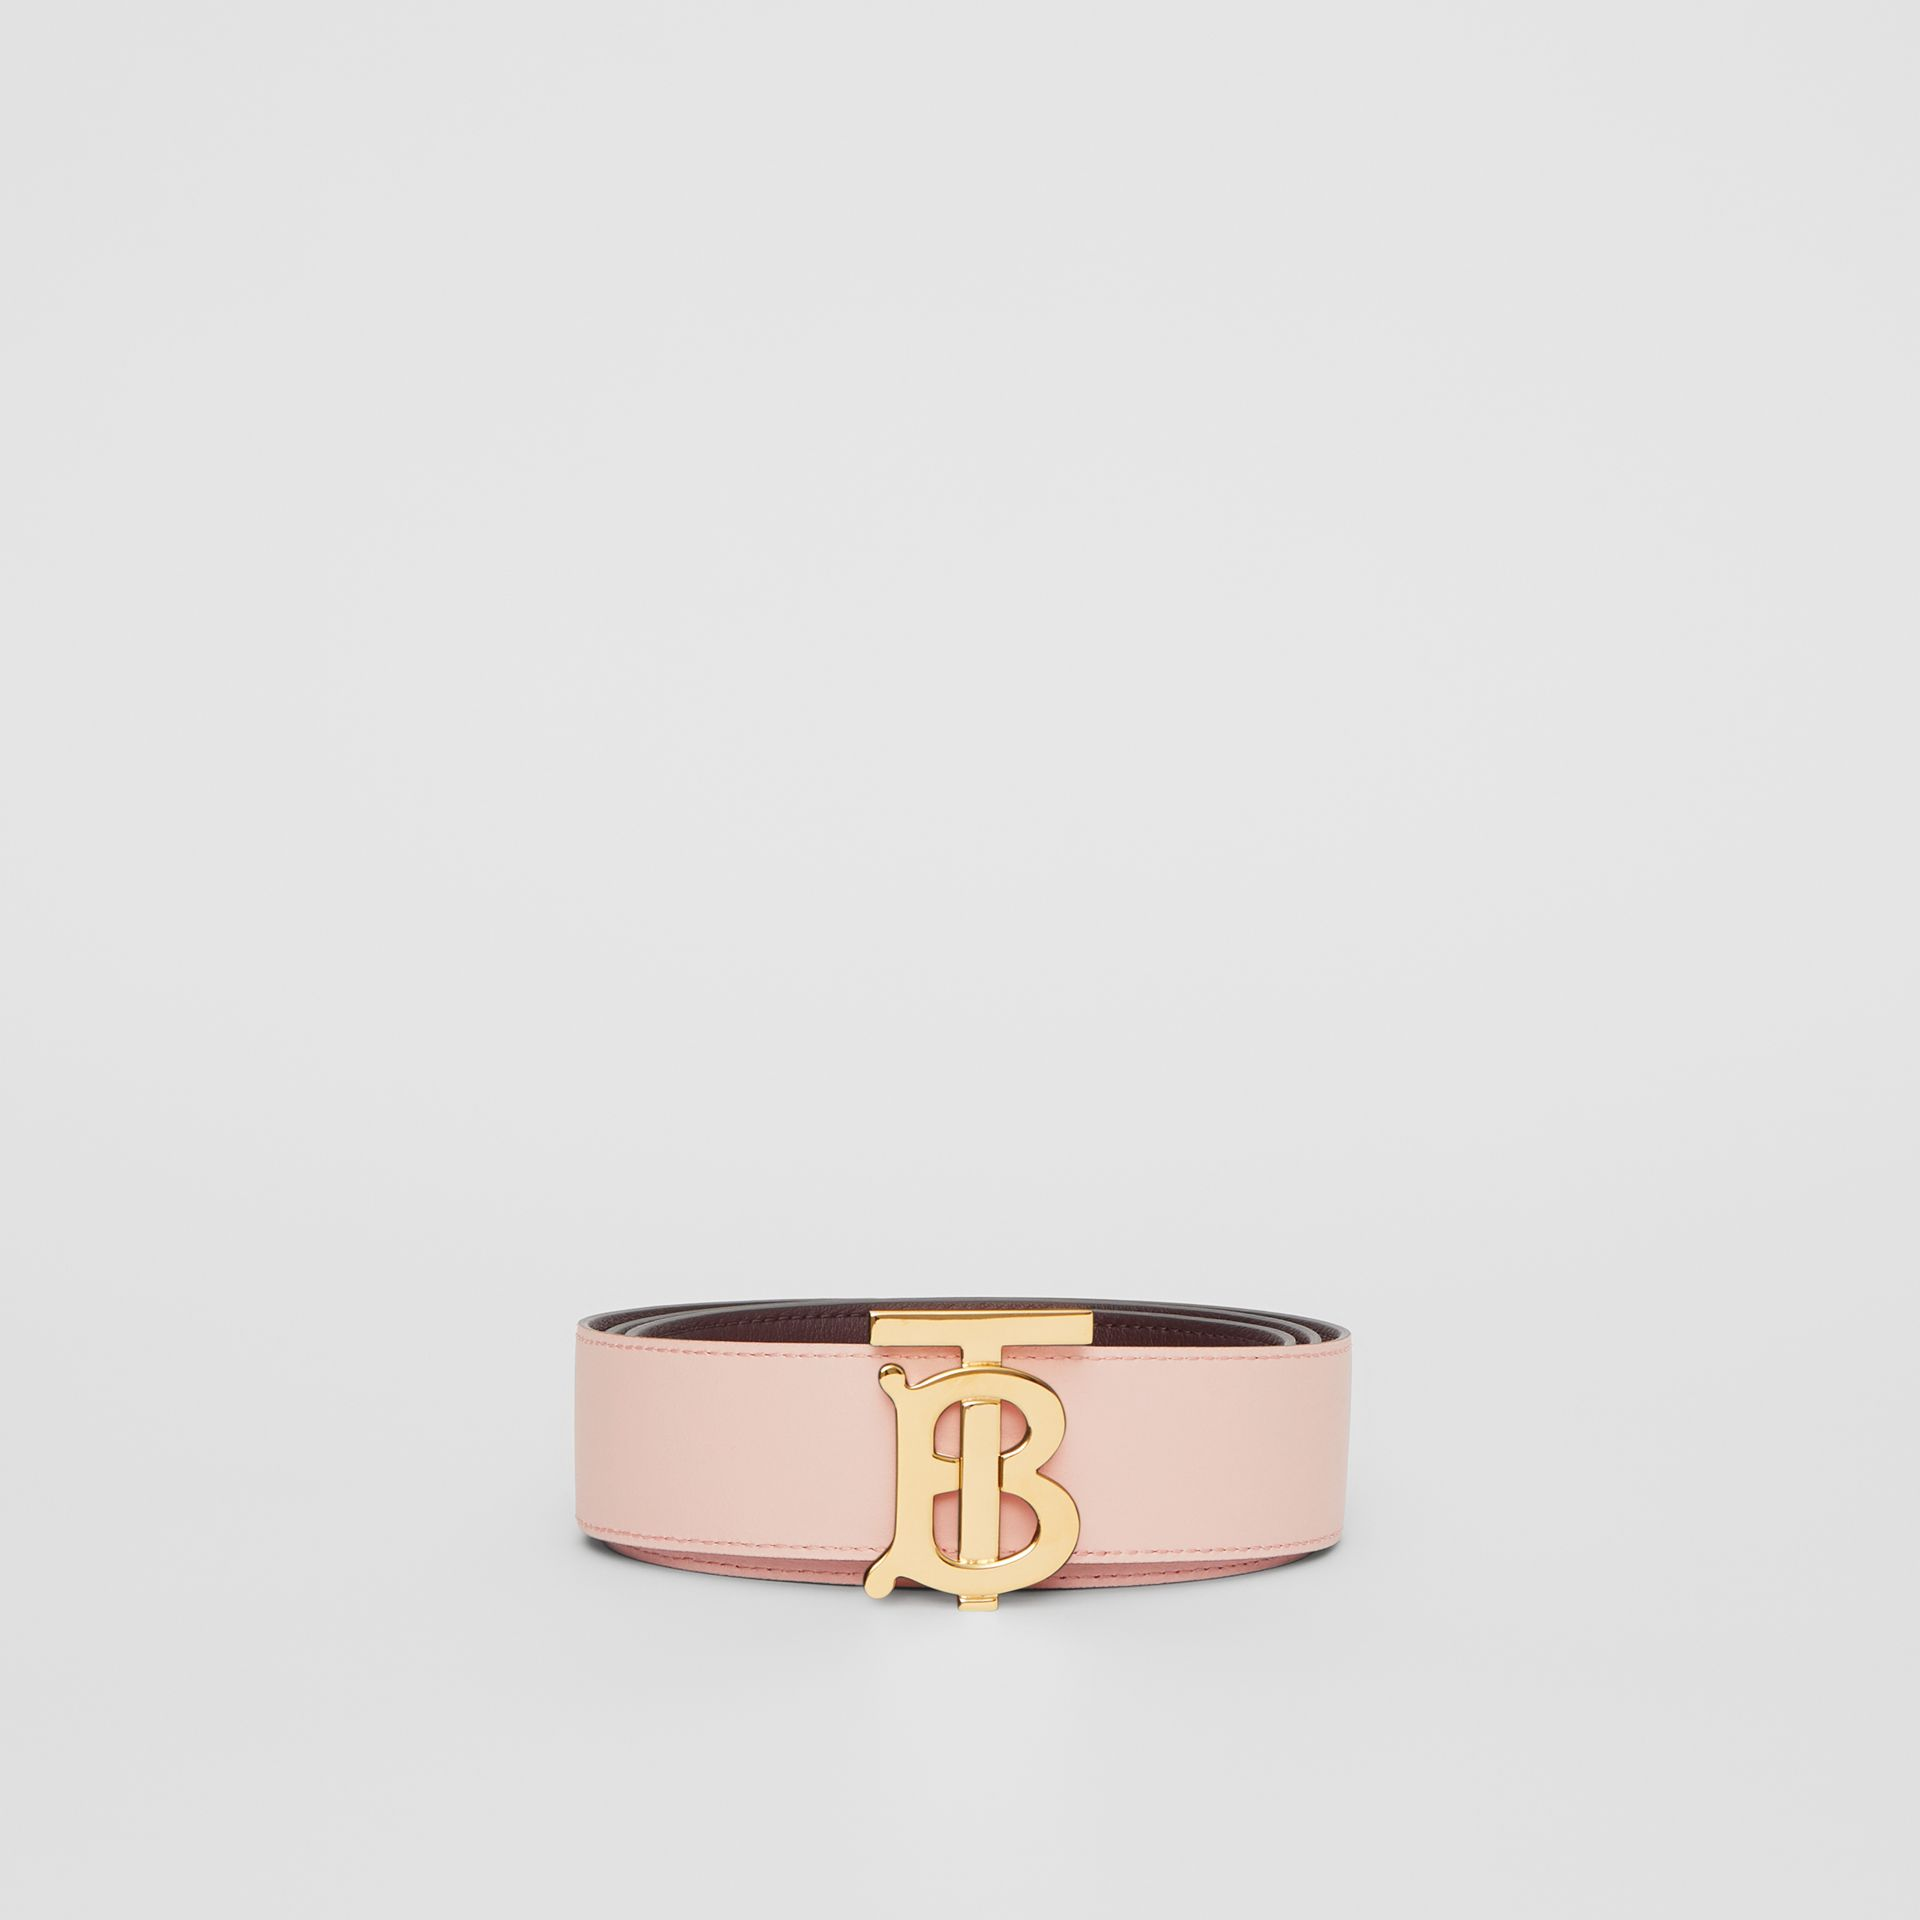 Reversible Monogram Motif Leather Belt in Oxblood/rose Beige - Women | Burberry Singapore - gallery image 7